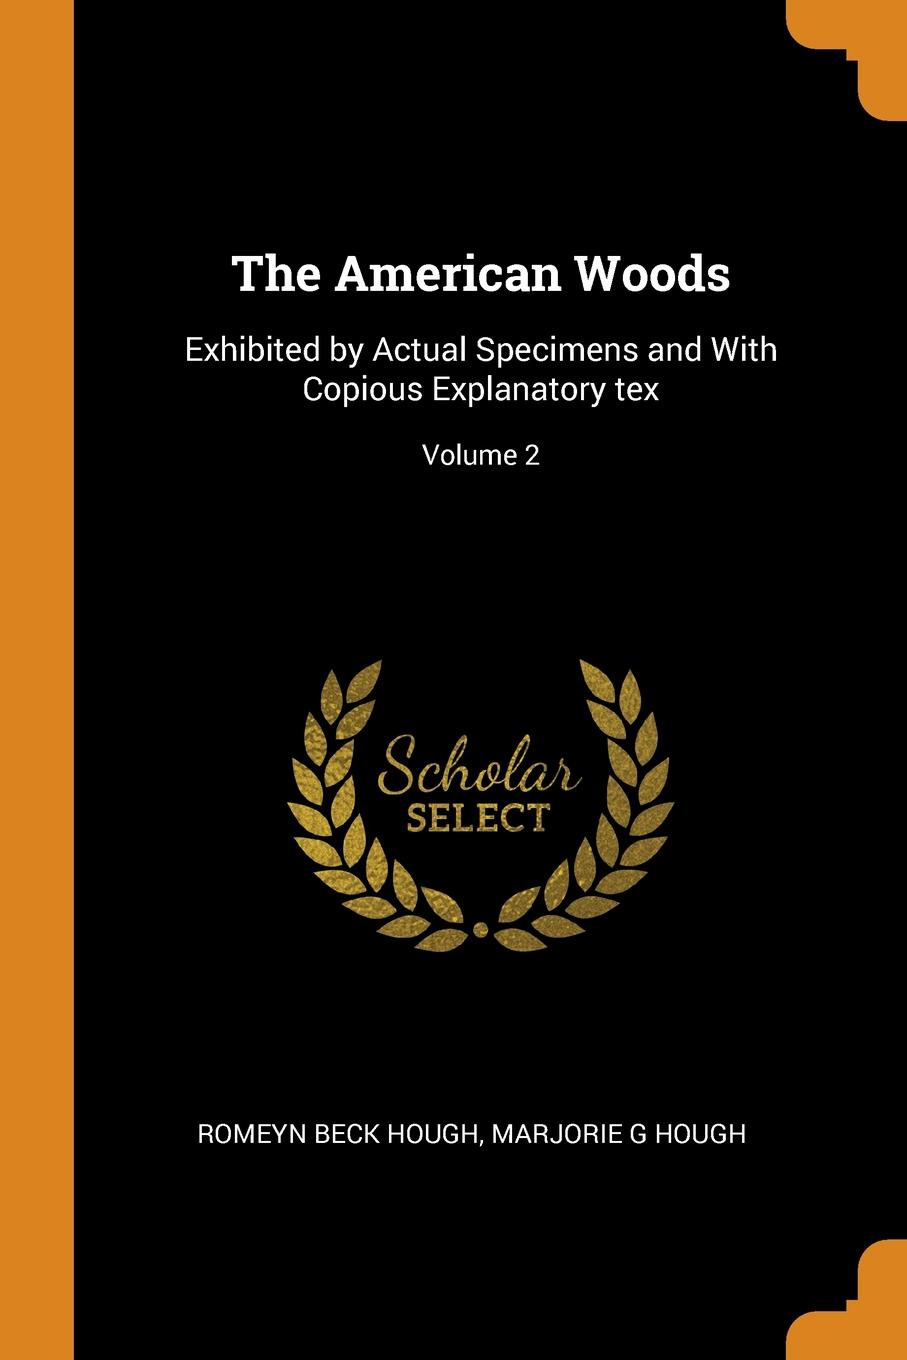 The American Woods. Exhibited by Actual Specimens and With Copious Explanatory tex; Volume 2